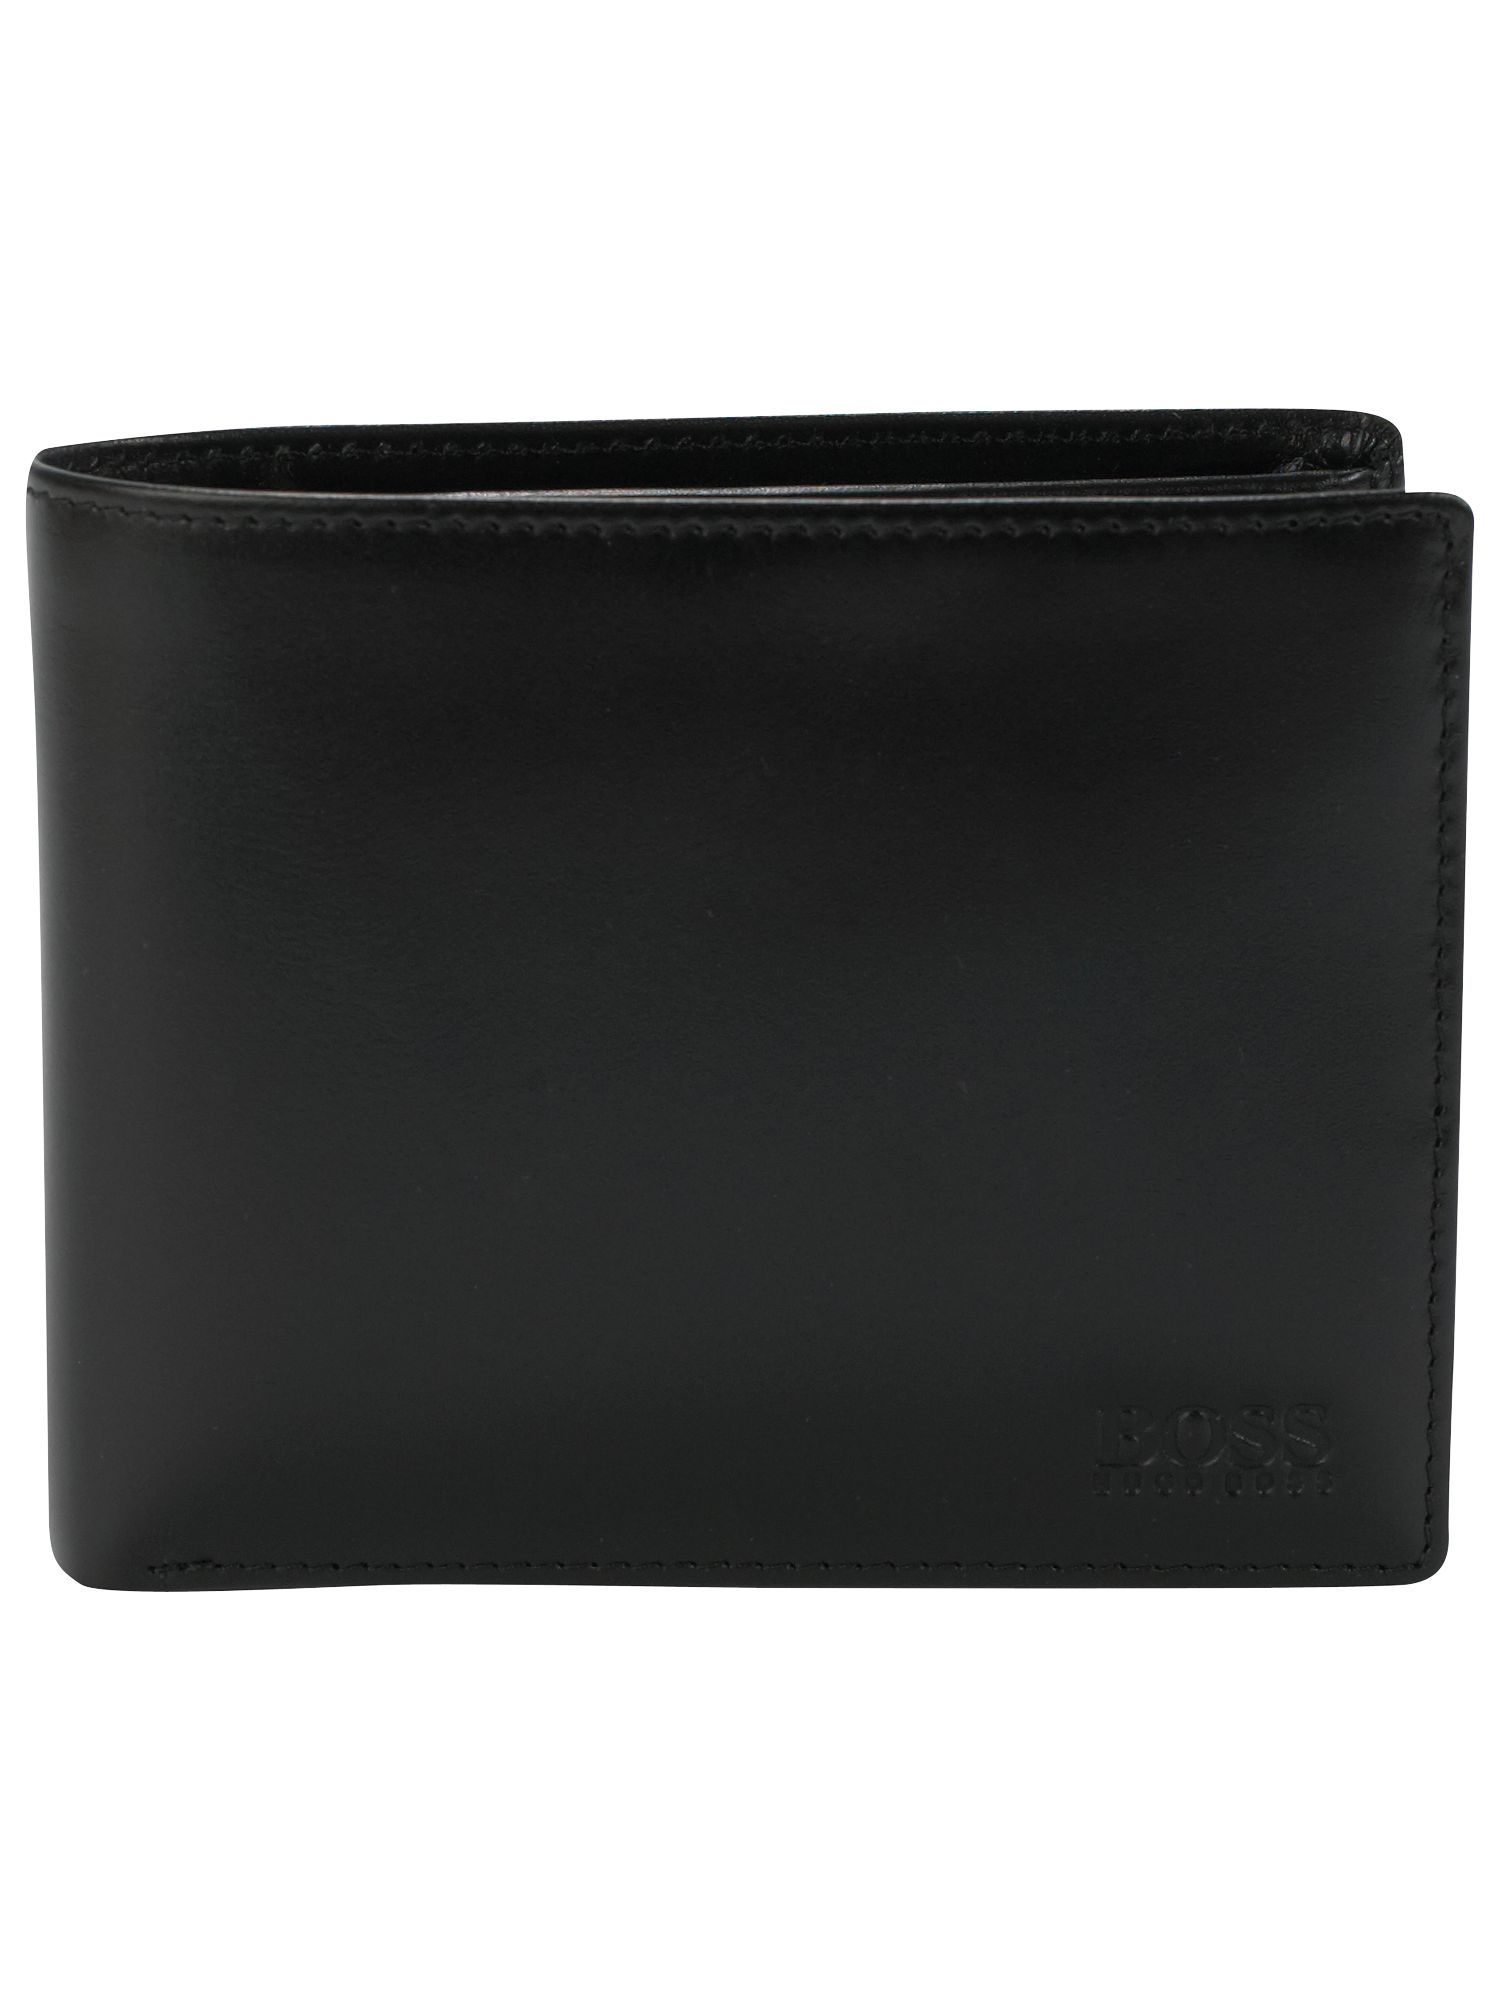 Hugo Boss Wallet With Coin Pocket - House of Fraser